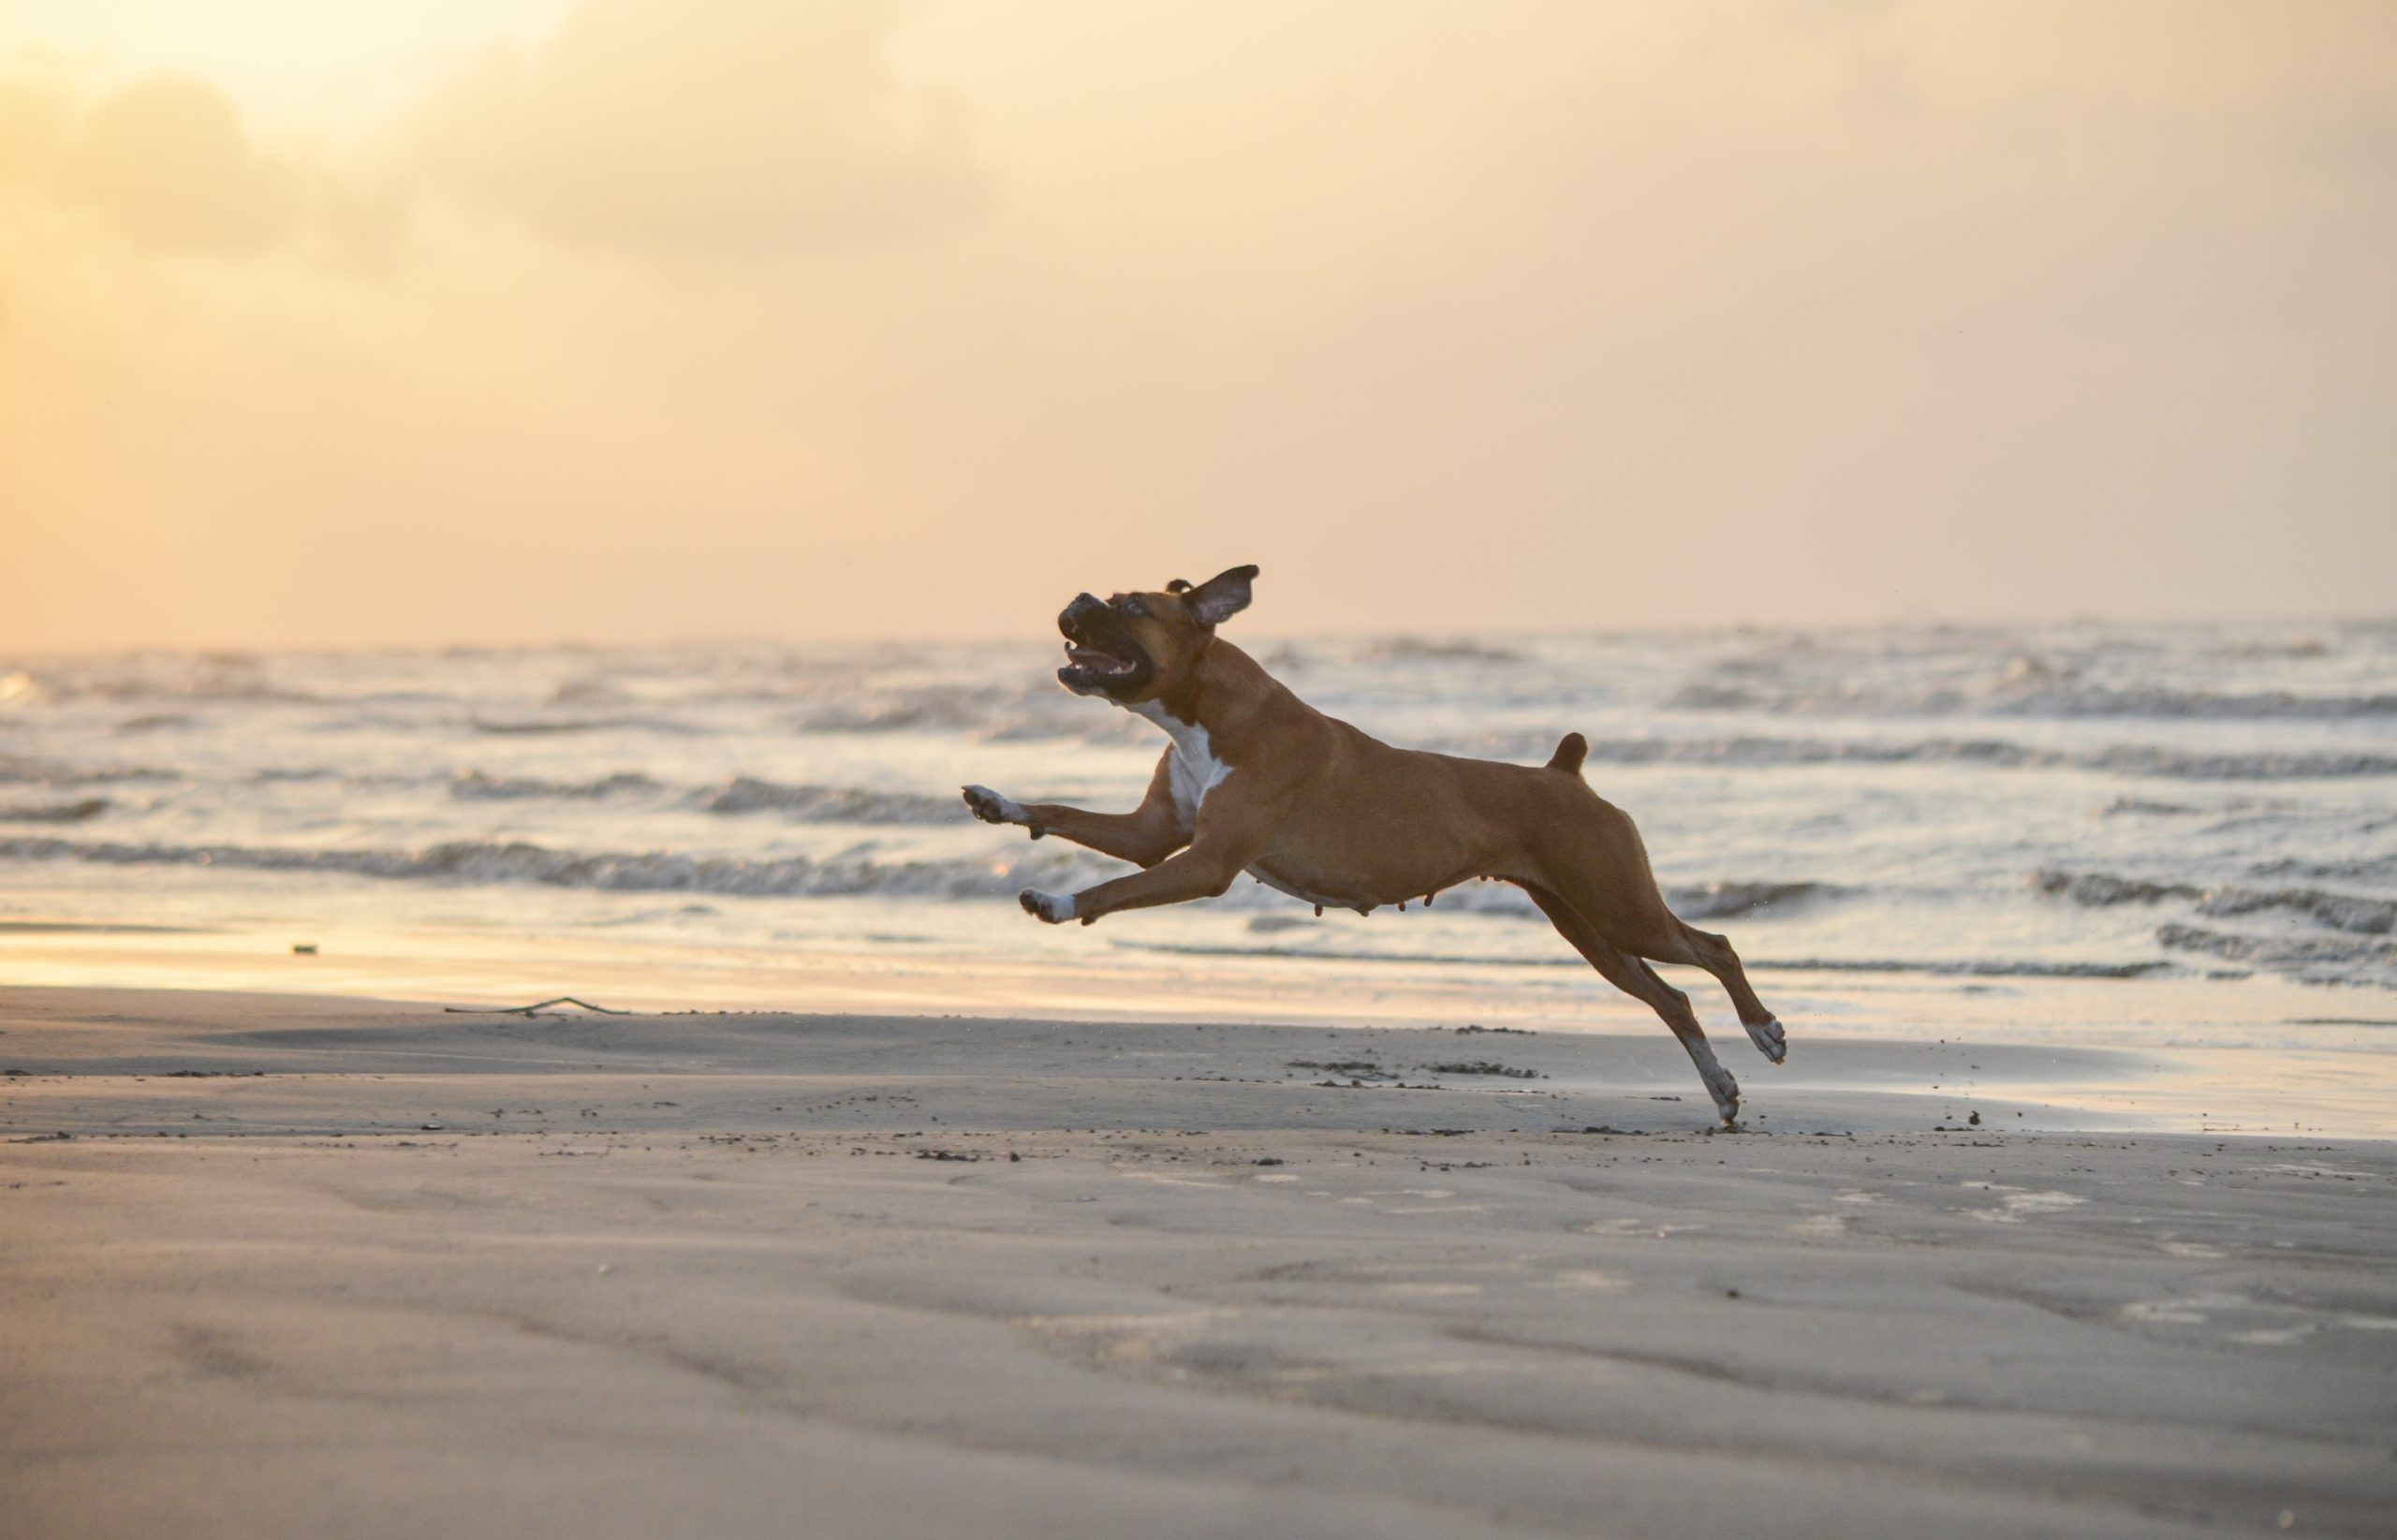 10 Things To Do With Your Pet In Galveston